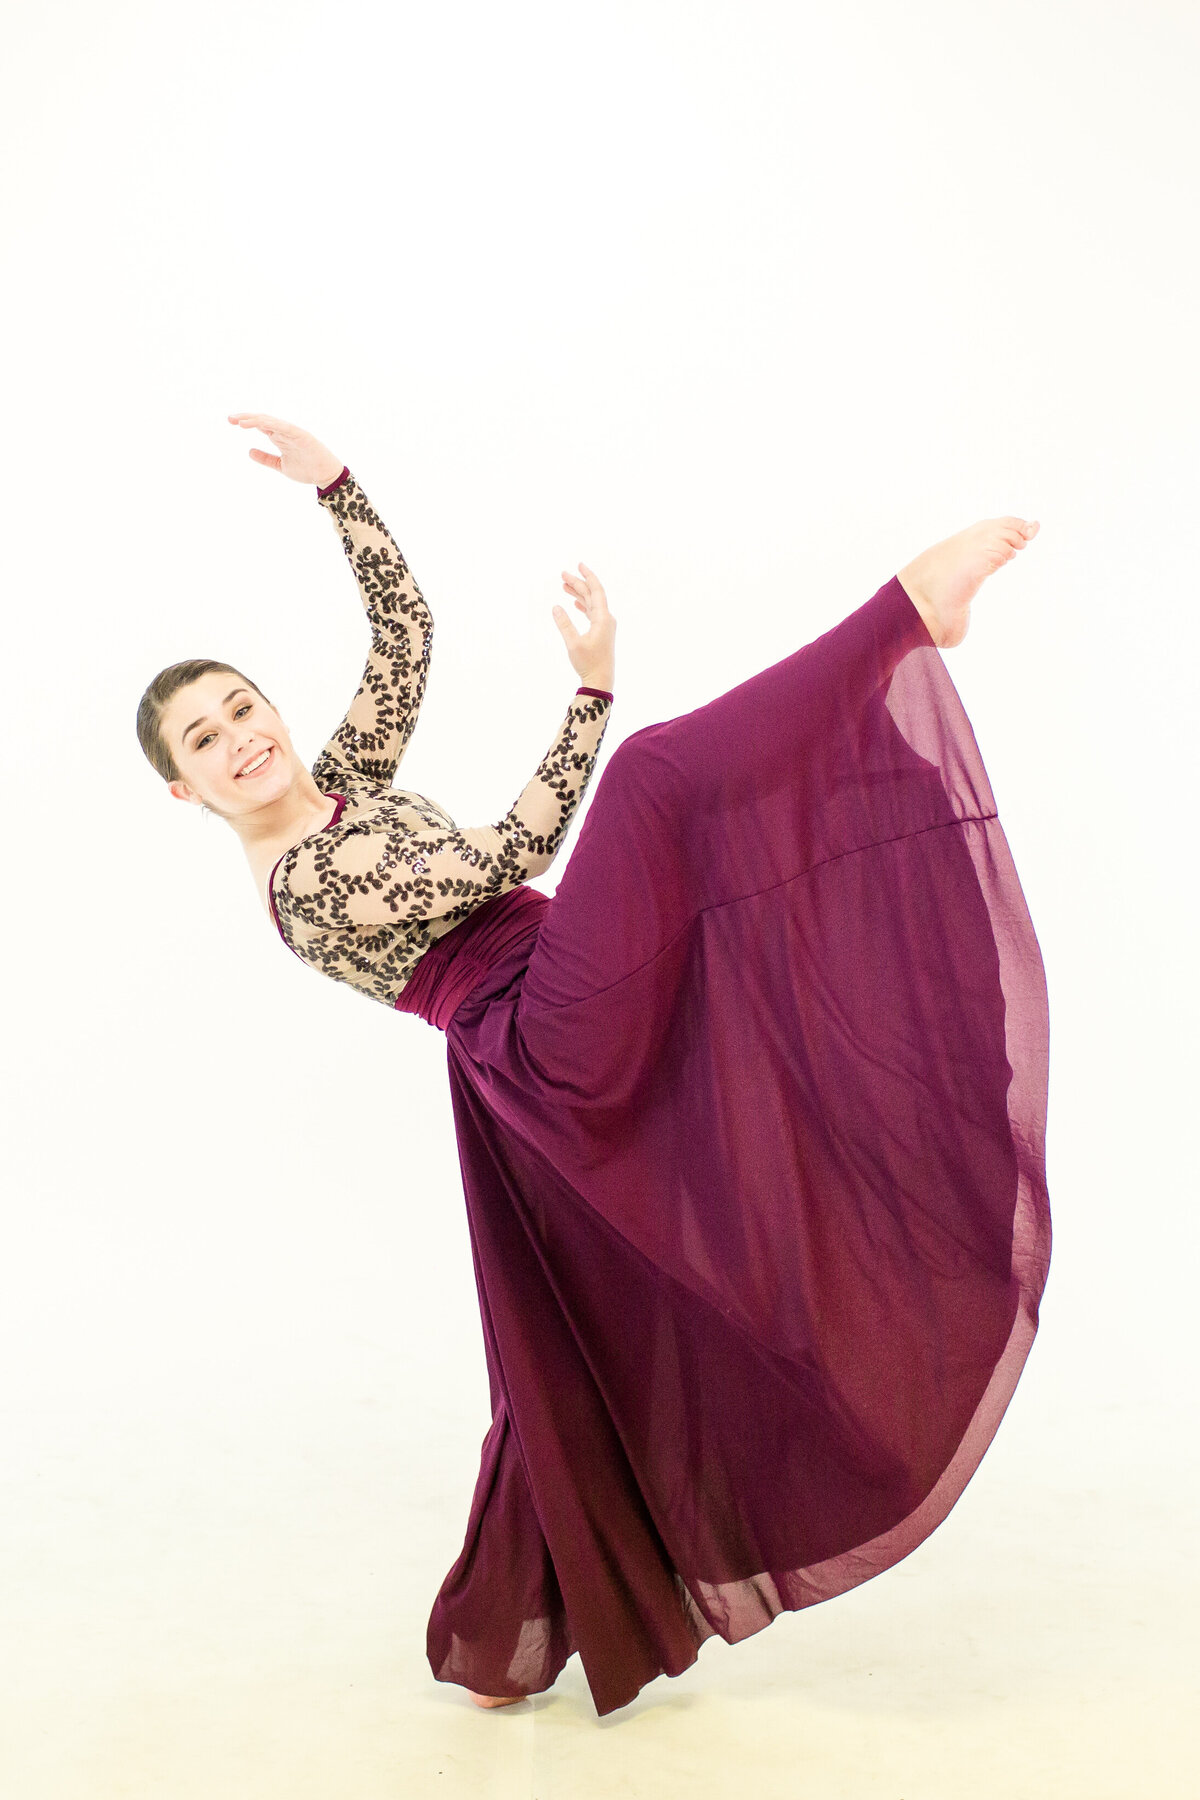 Showcase - Virginia Dance Photographer - Photography by Amy Nicole-87622-6